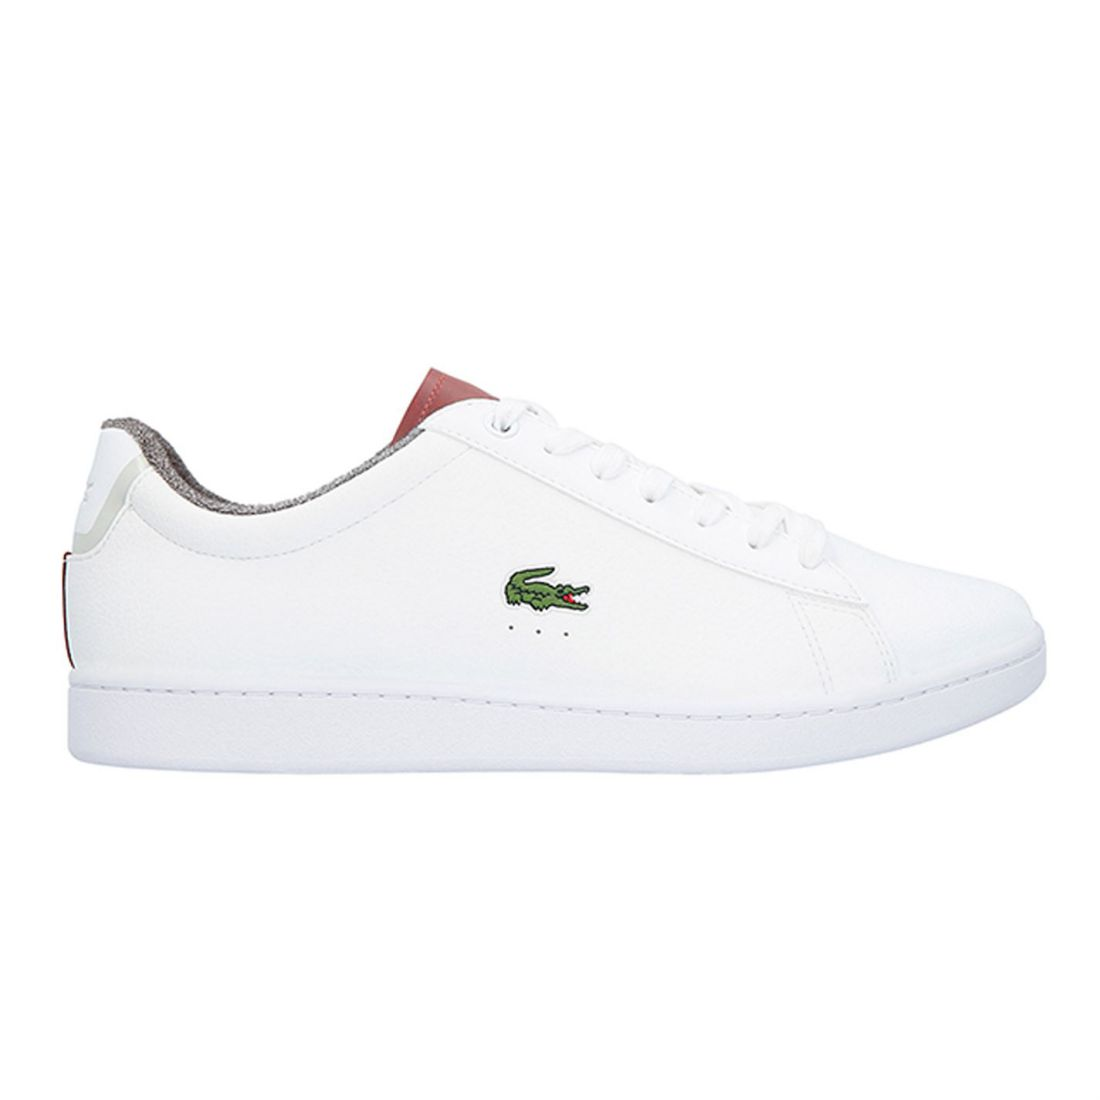 Mens Lacoste Lacoste Lacoste 318 Trainers Low New bb2387